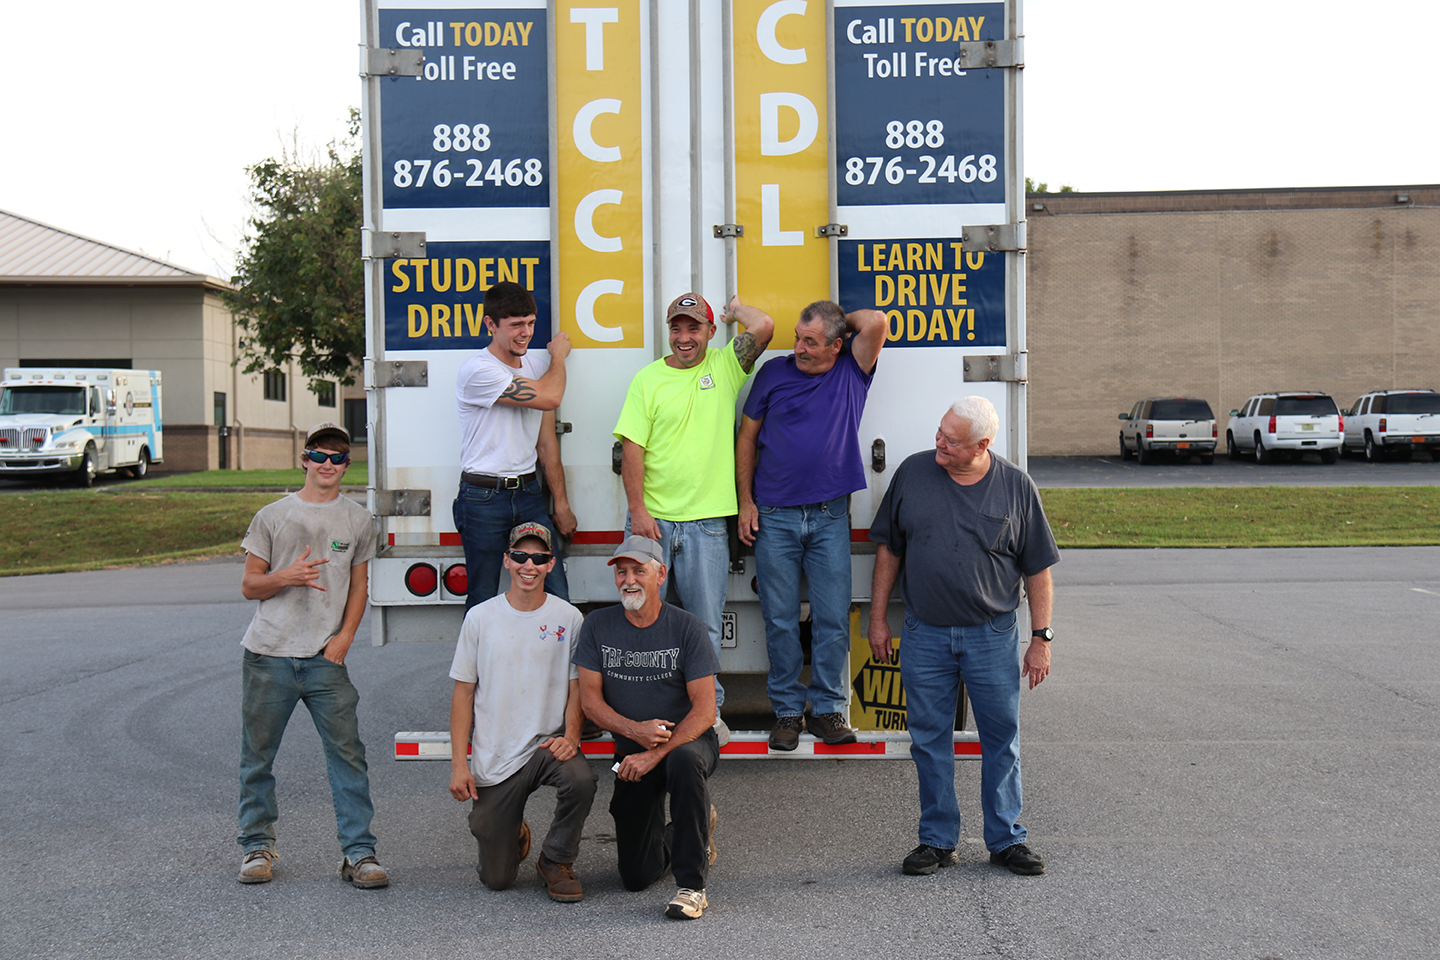 Tri-County Community College commercial driver license students (from left) Matthew Cody, Jesse Rogers, Nathaniel Cody, Arjuna King, John Olszewski, and Frank Barger pose with instructor Barry Helton (bottom center) in front of the college's new tractor-trailer at the main campus.